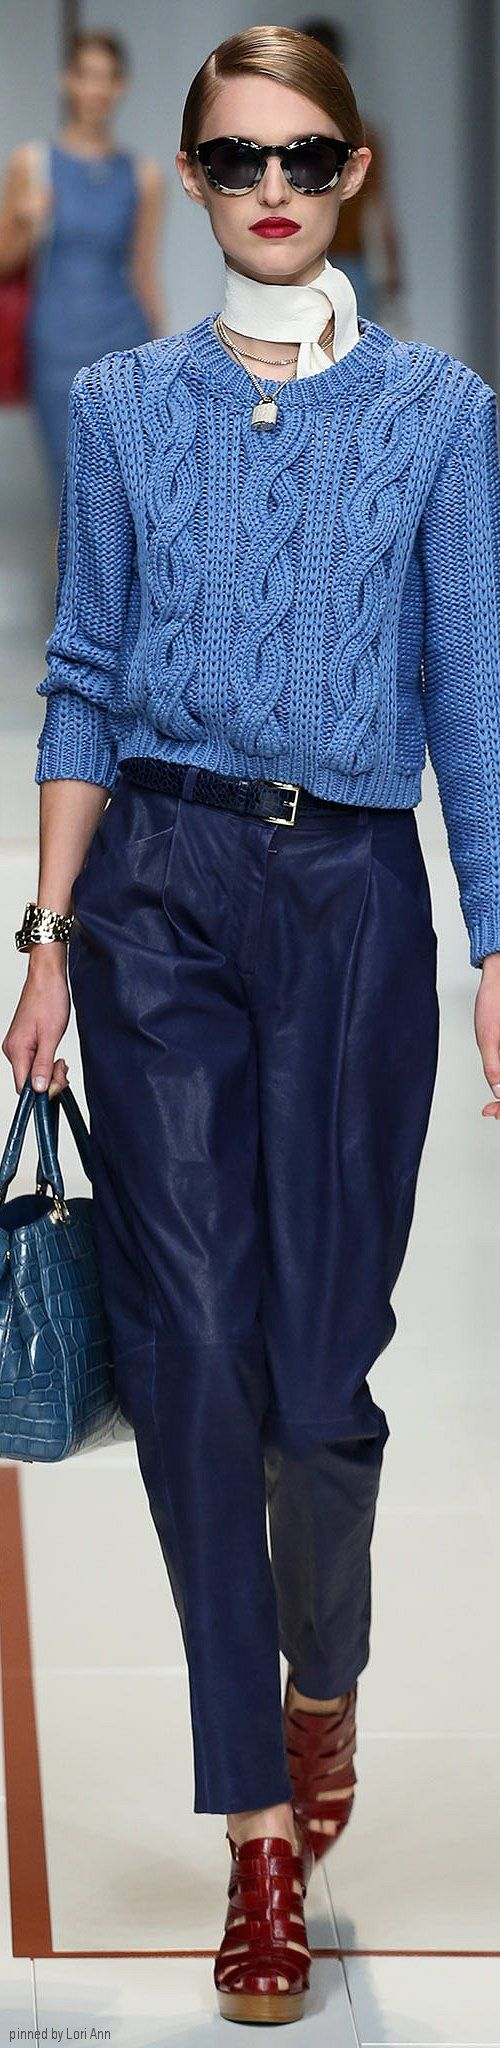 Thursday look - a blue vision - Trussardi Spring 2015 RTW